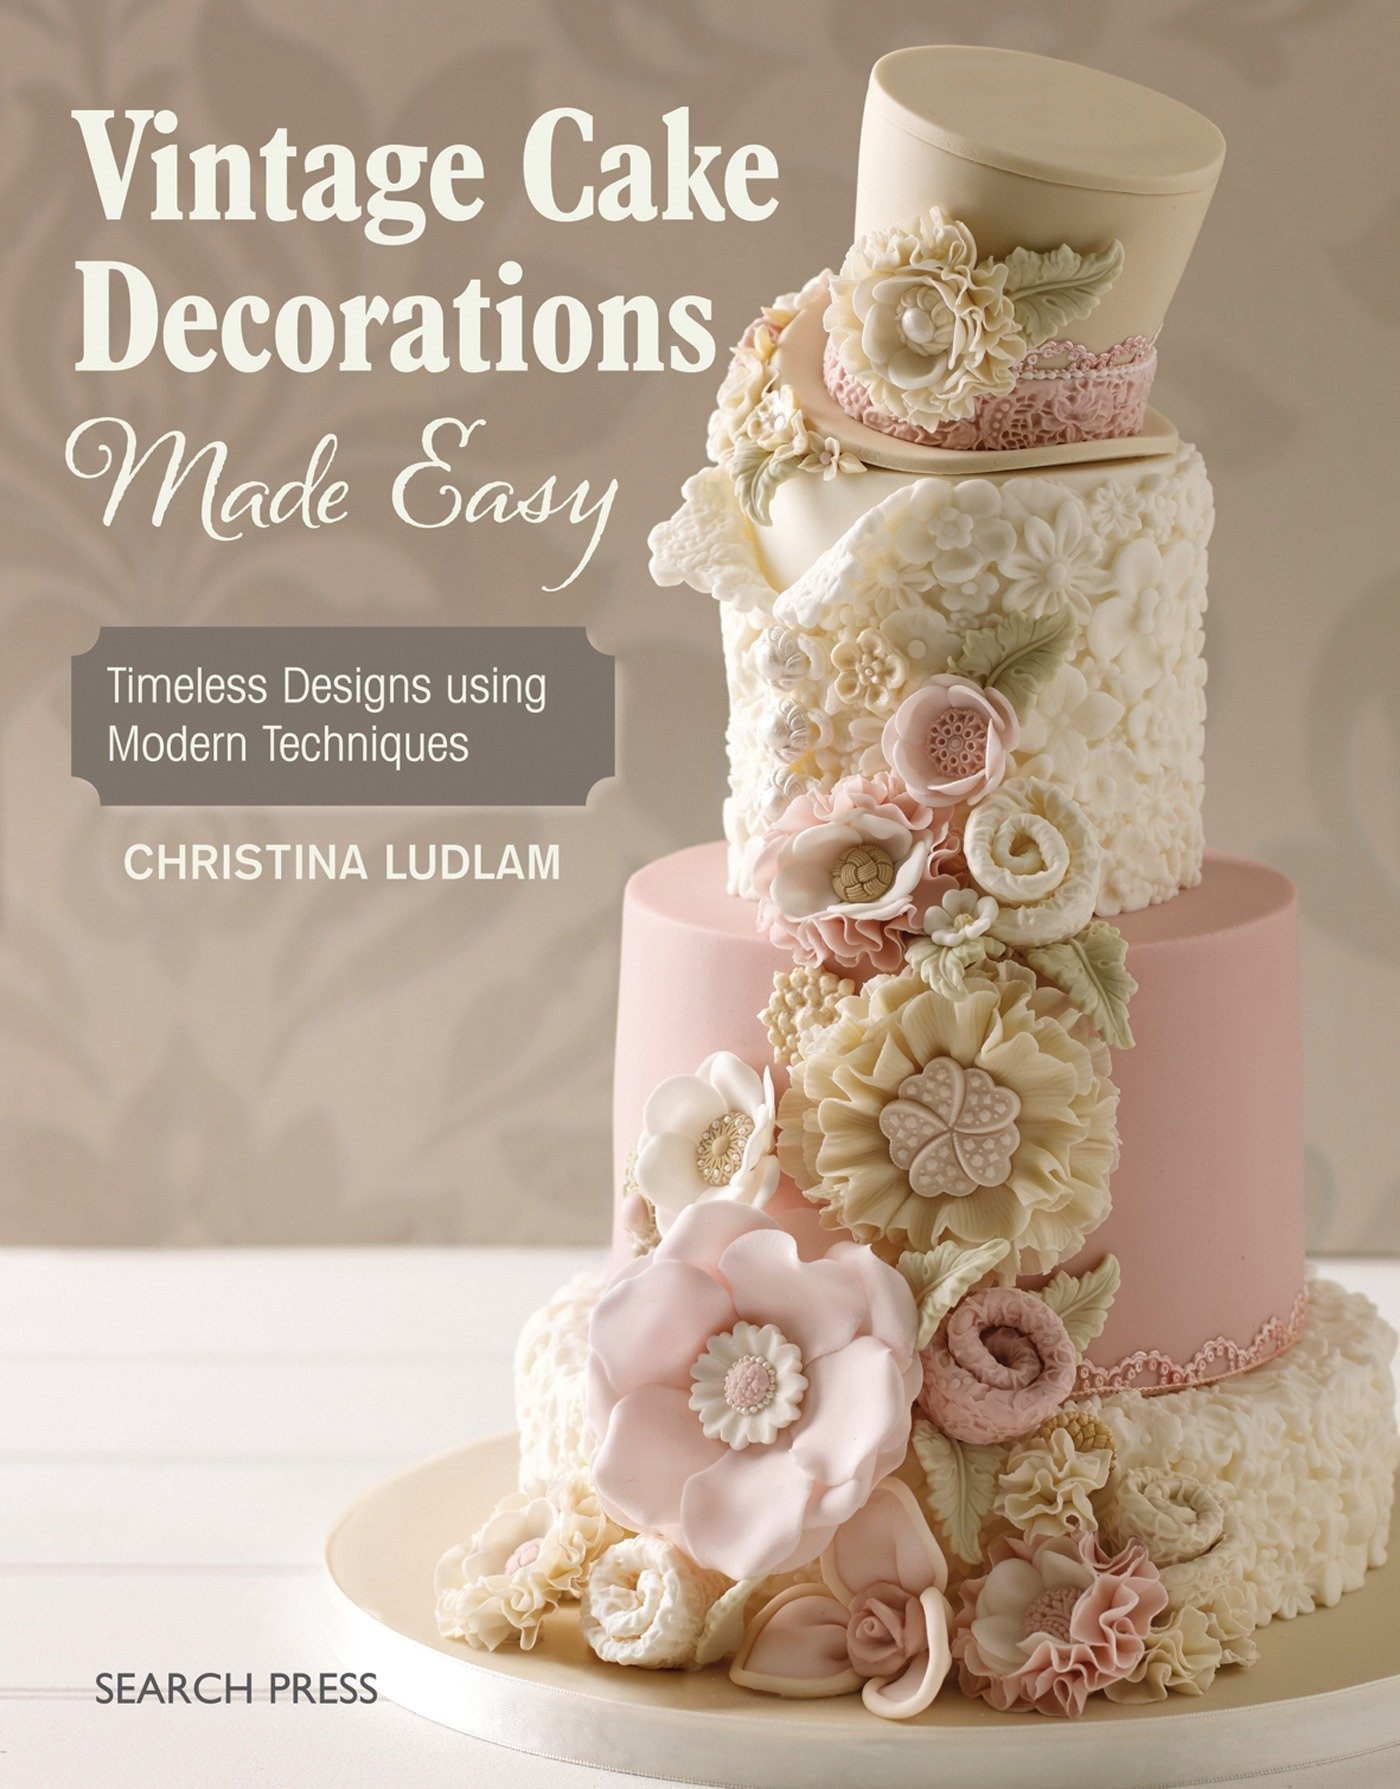 Vintage Cake Decorations Made Easy Timeless Designs Using Modern Techniques Amazonde Christina Ludlam Fremdsprachige Bucher